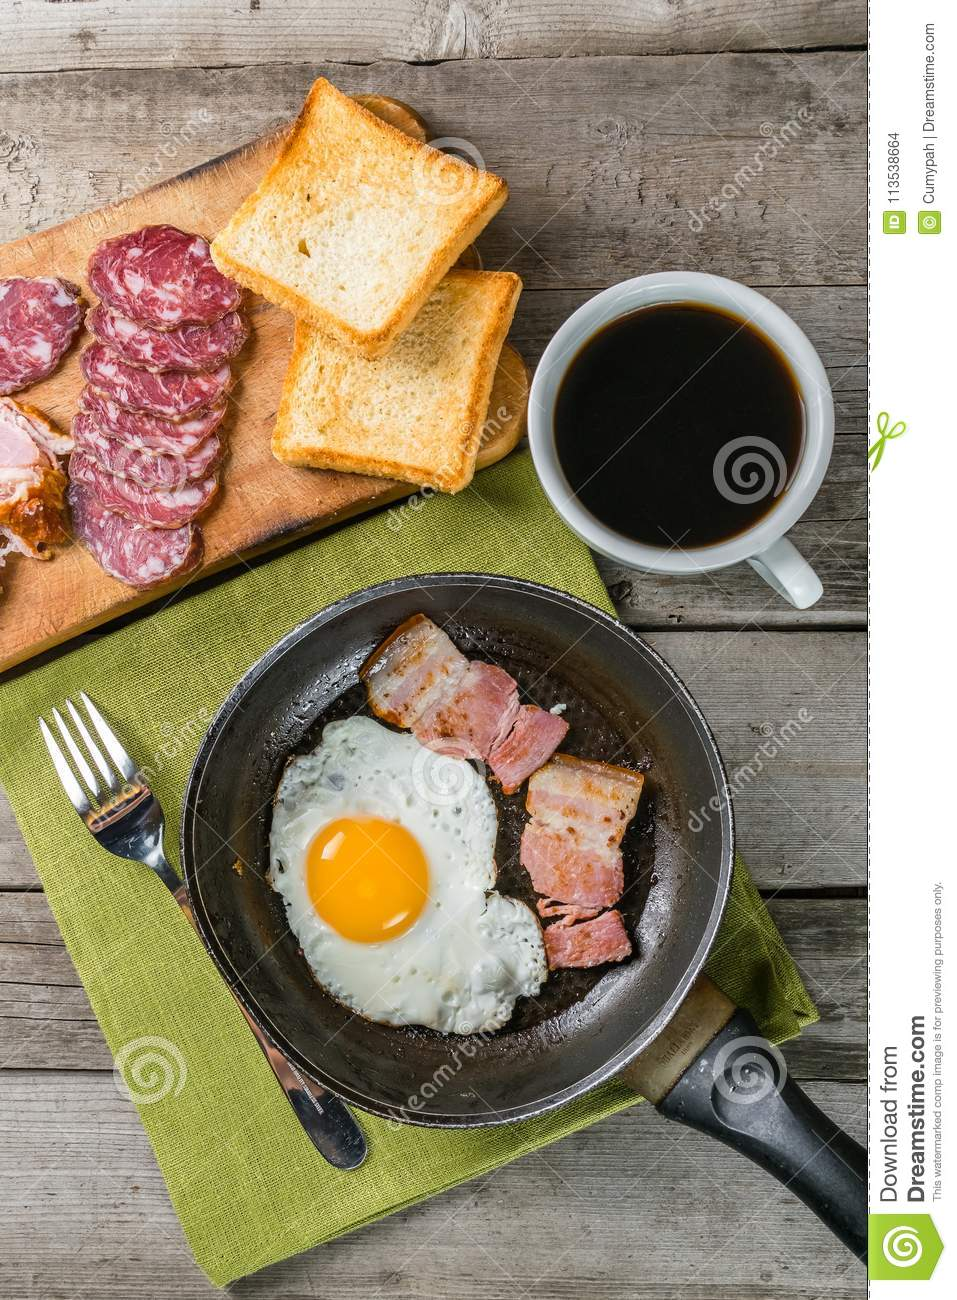 Fried Eggs Bacon And Coffee